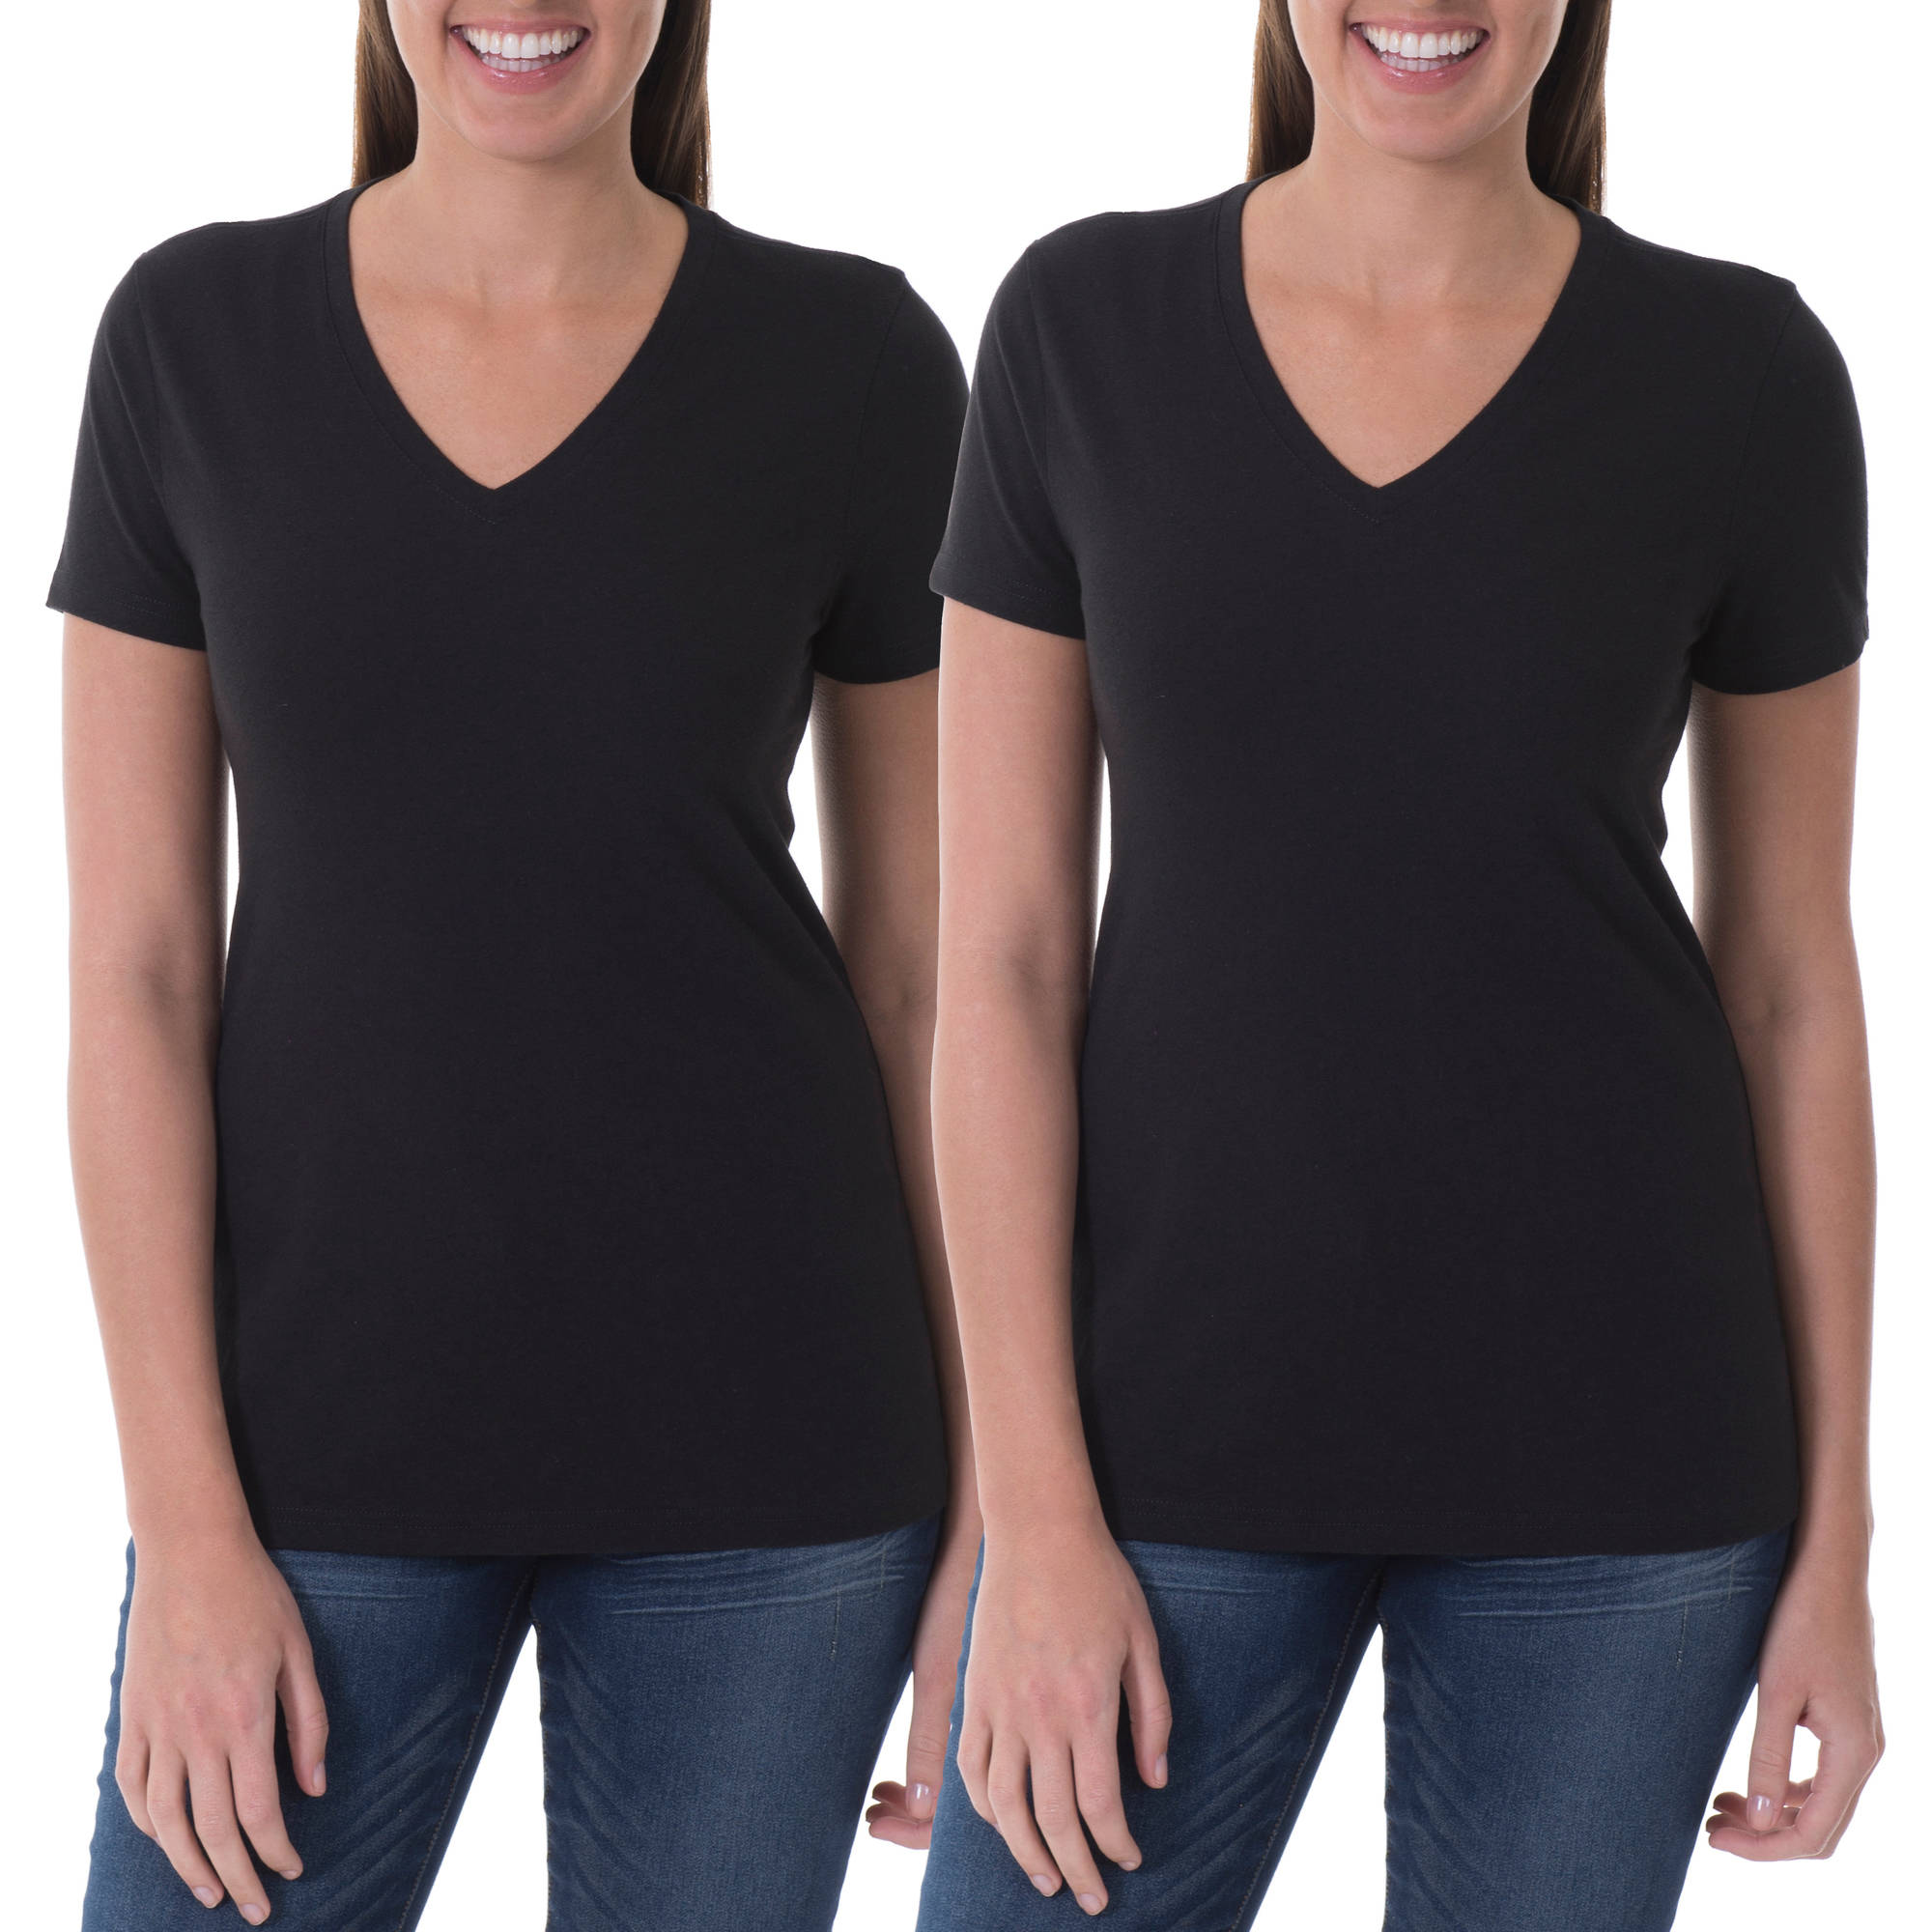 Faded Glory Women's Essential Short Sleeve V- Neck T-Shirt, 2 Pack Value Bundle